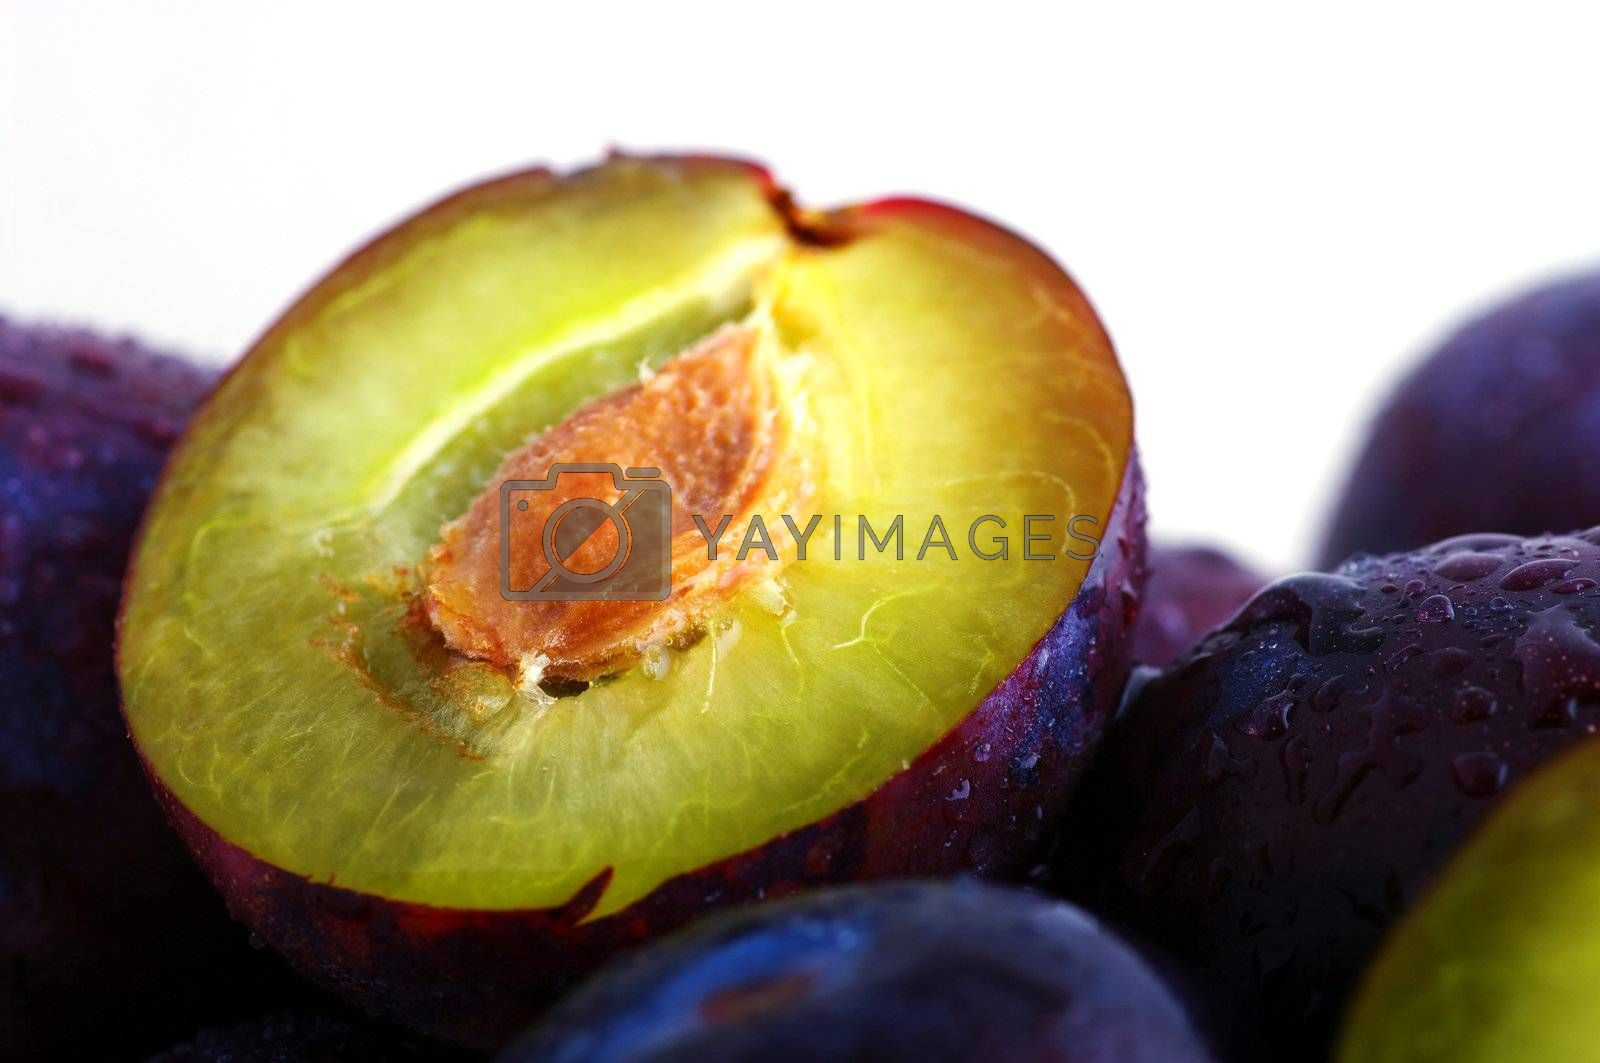 Royalty free image of Half of plums isolated on white background by dolnikow